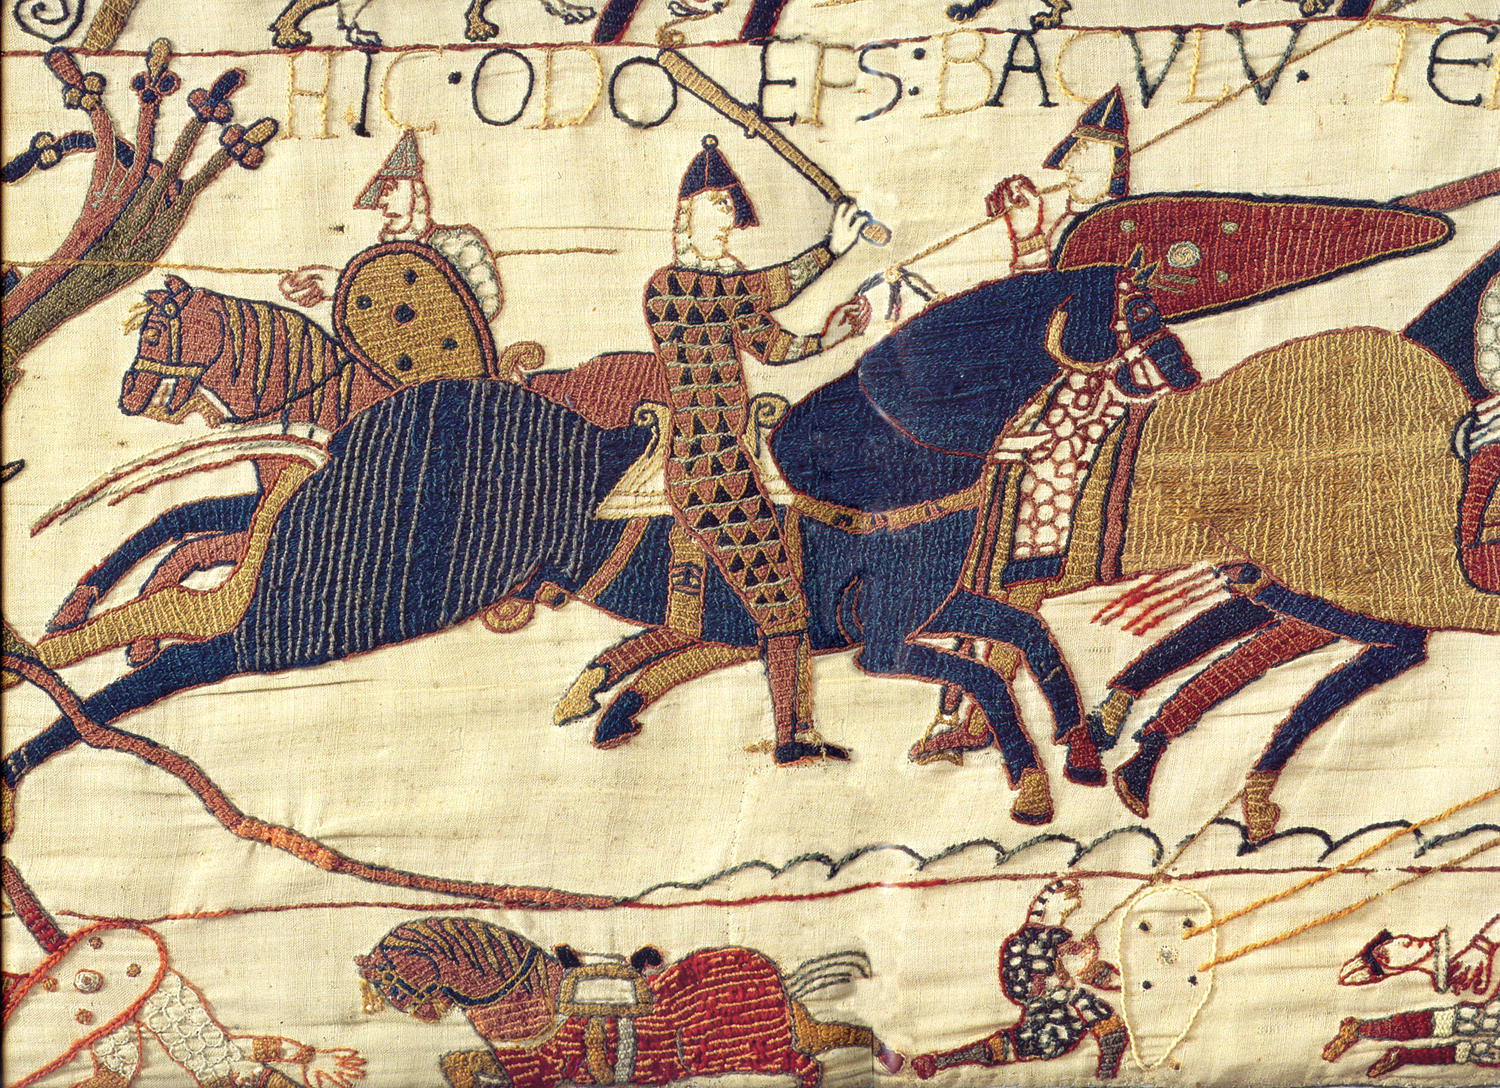 Bayeux Tapestry – Wikipedia Inside Most Current Birds Face To Face I European Tapestries (View 6 of 20)